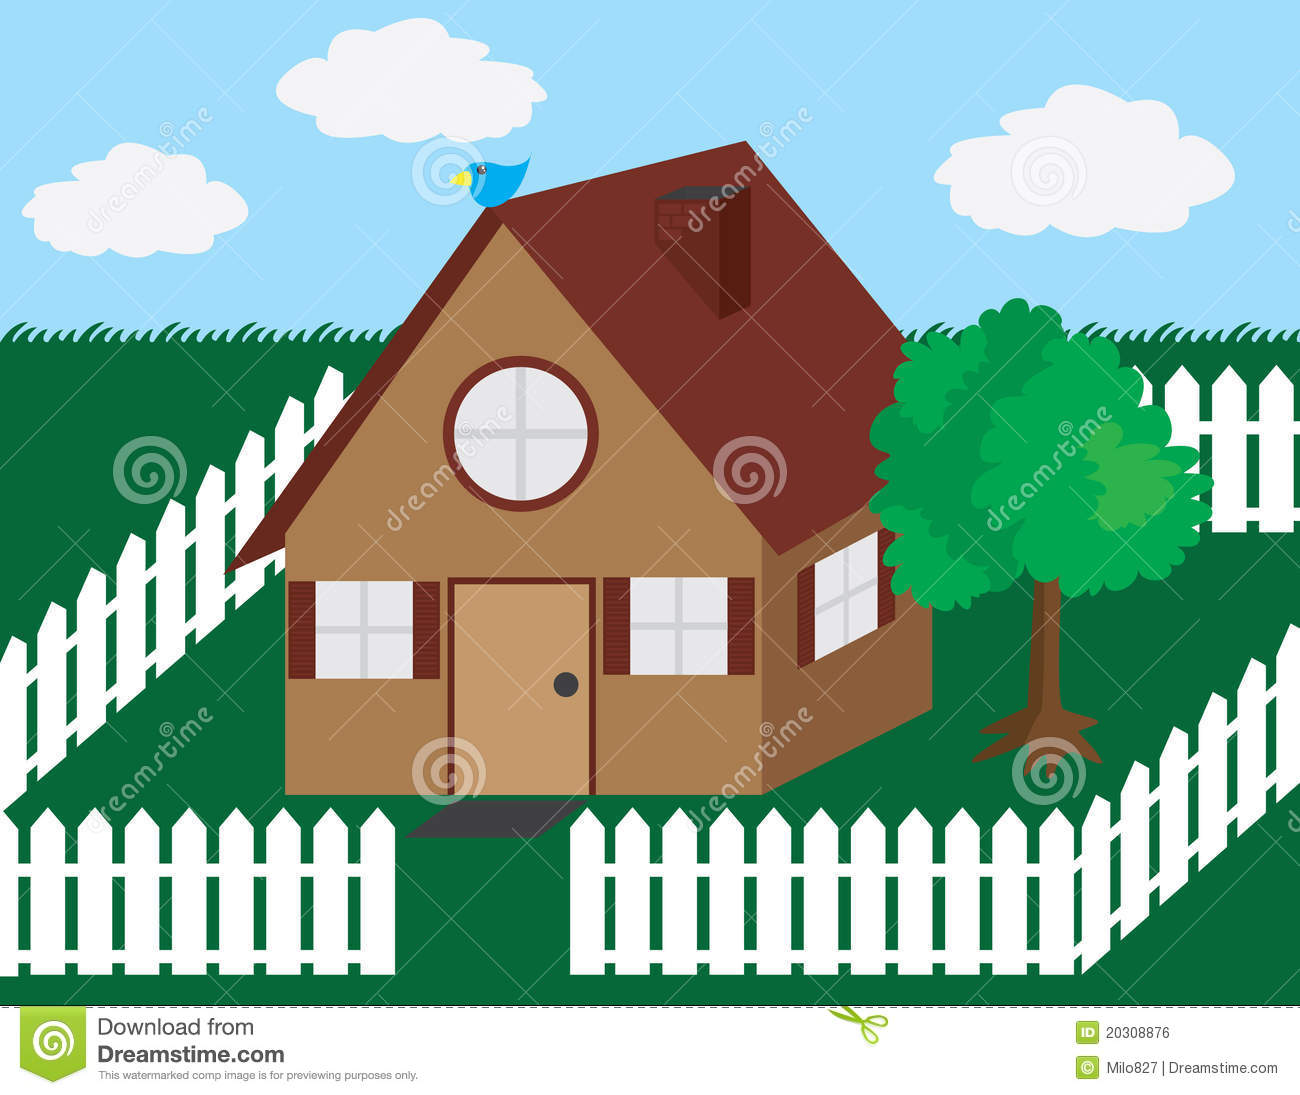 Clipart houses backyard. House with picket fence